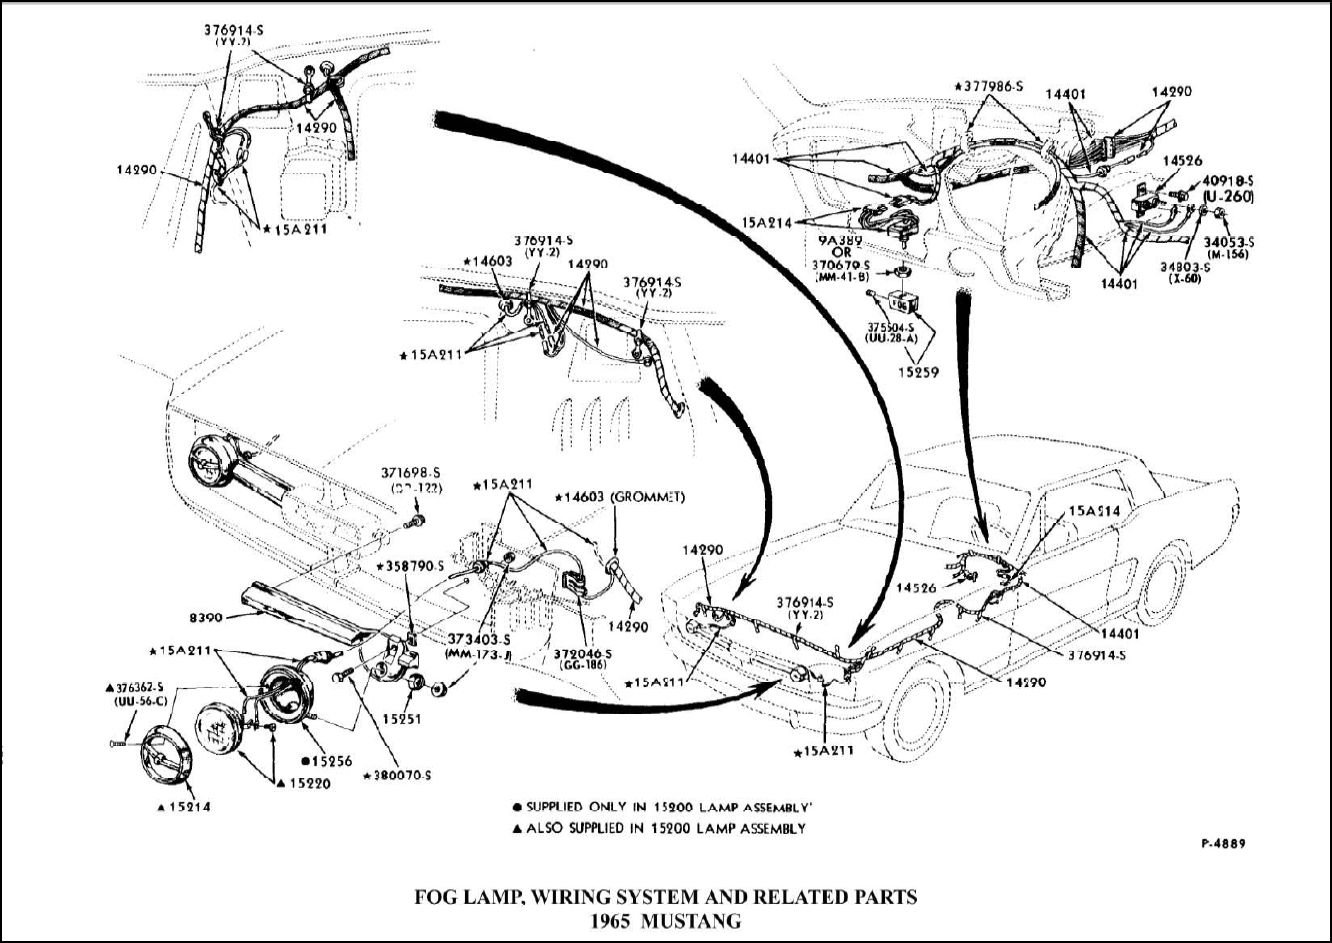 1965 mustang fog lamp wiring diagram trusted wiring diagram